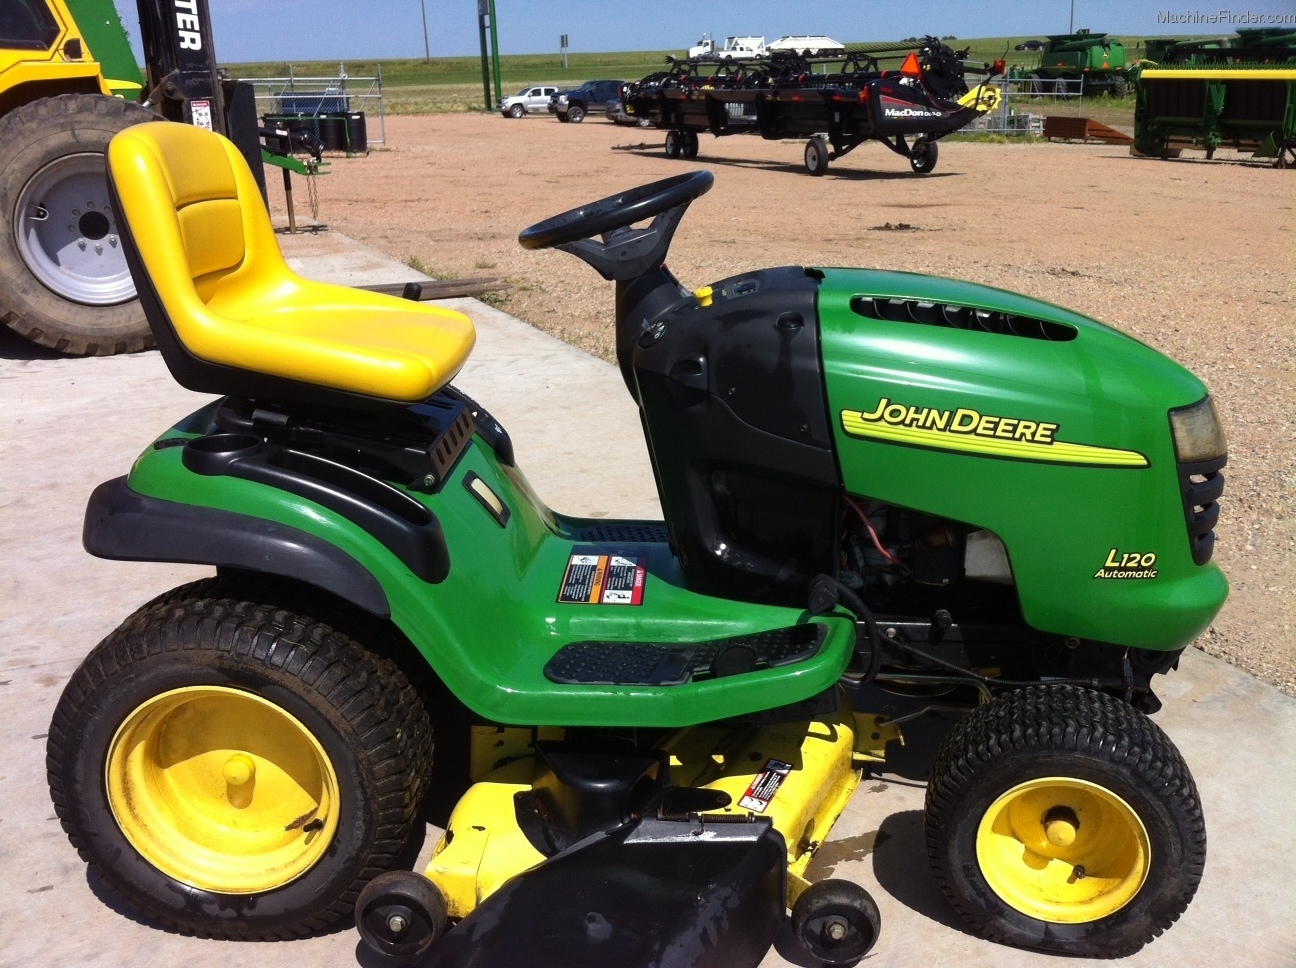 John Deere L120 Riding Mower Mowers Wiring Harness 2004 Lawn Garden And Commercial Mowing